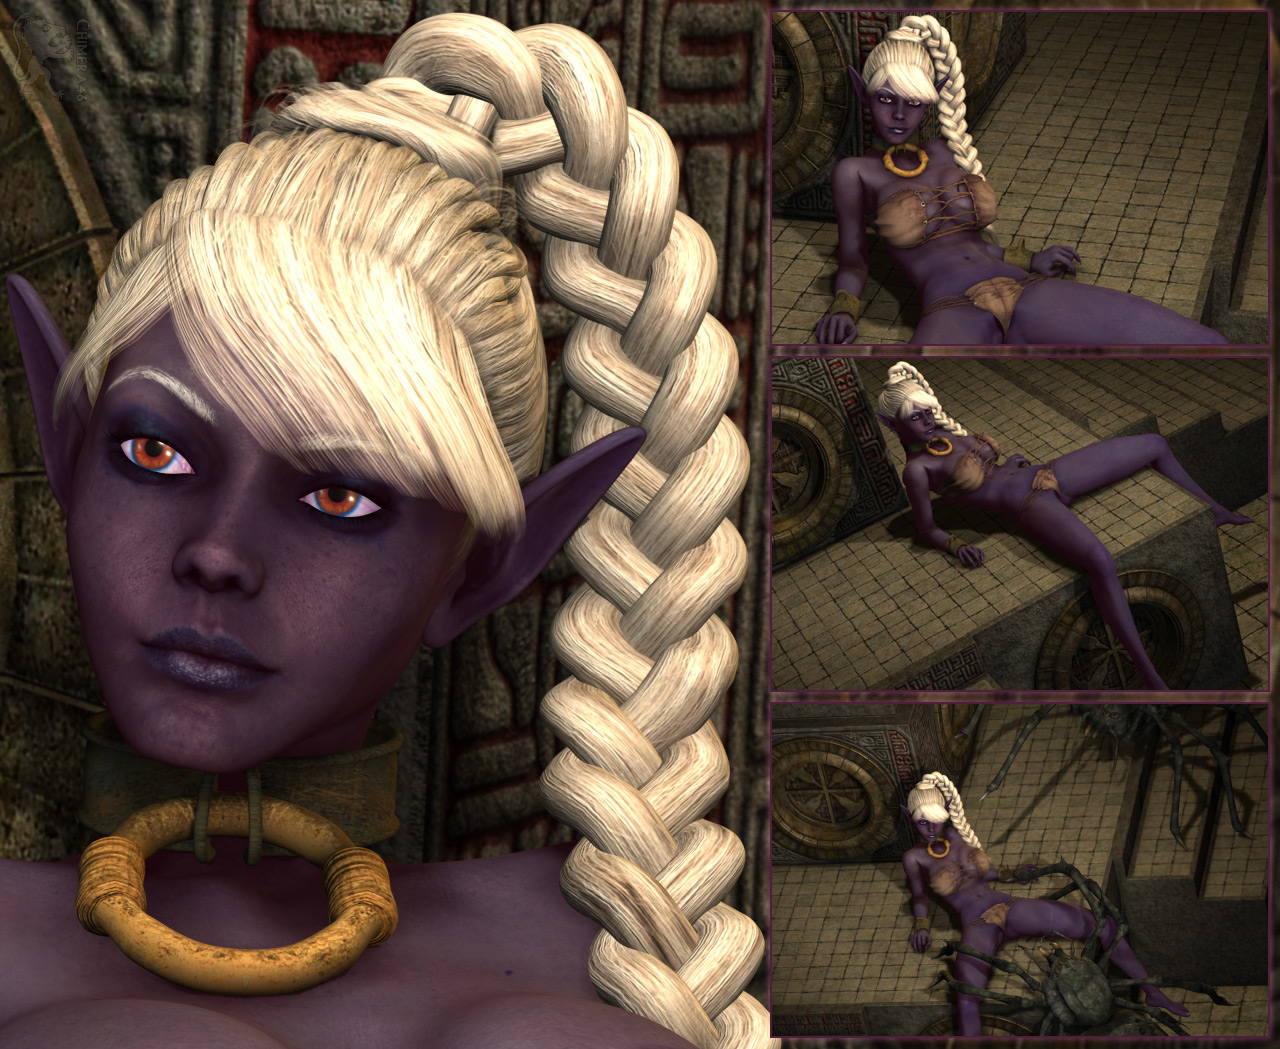 Blood elf henati erotic video